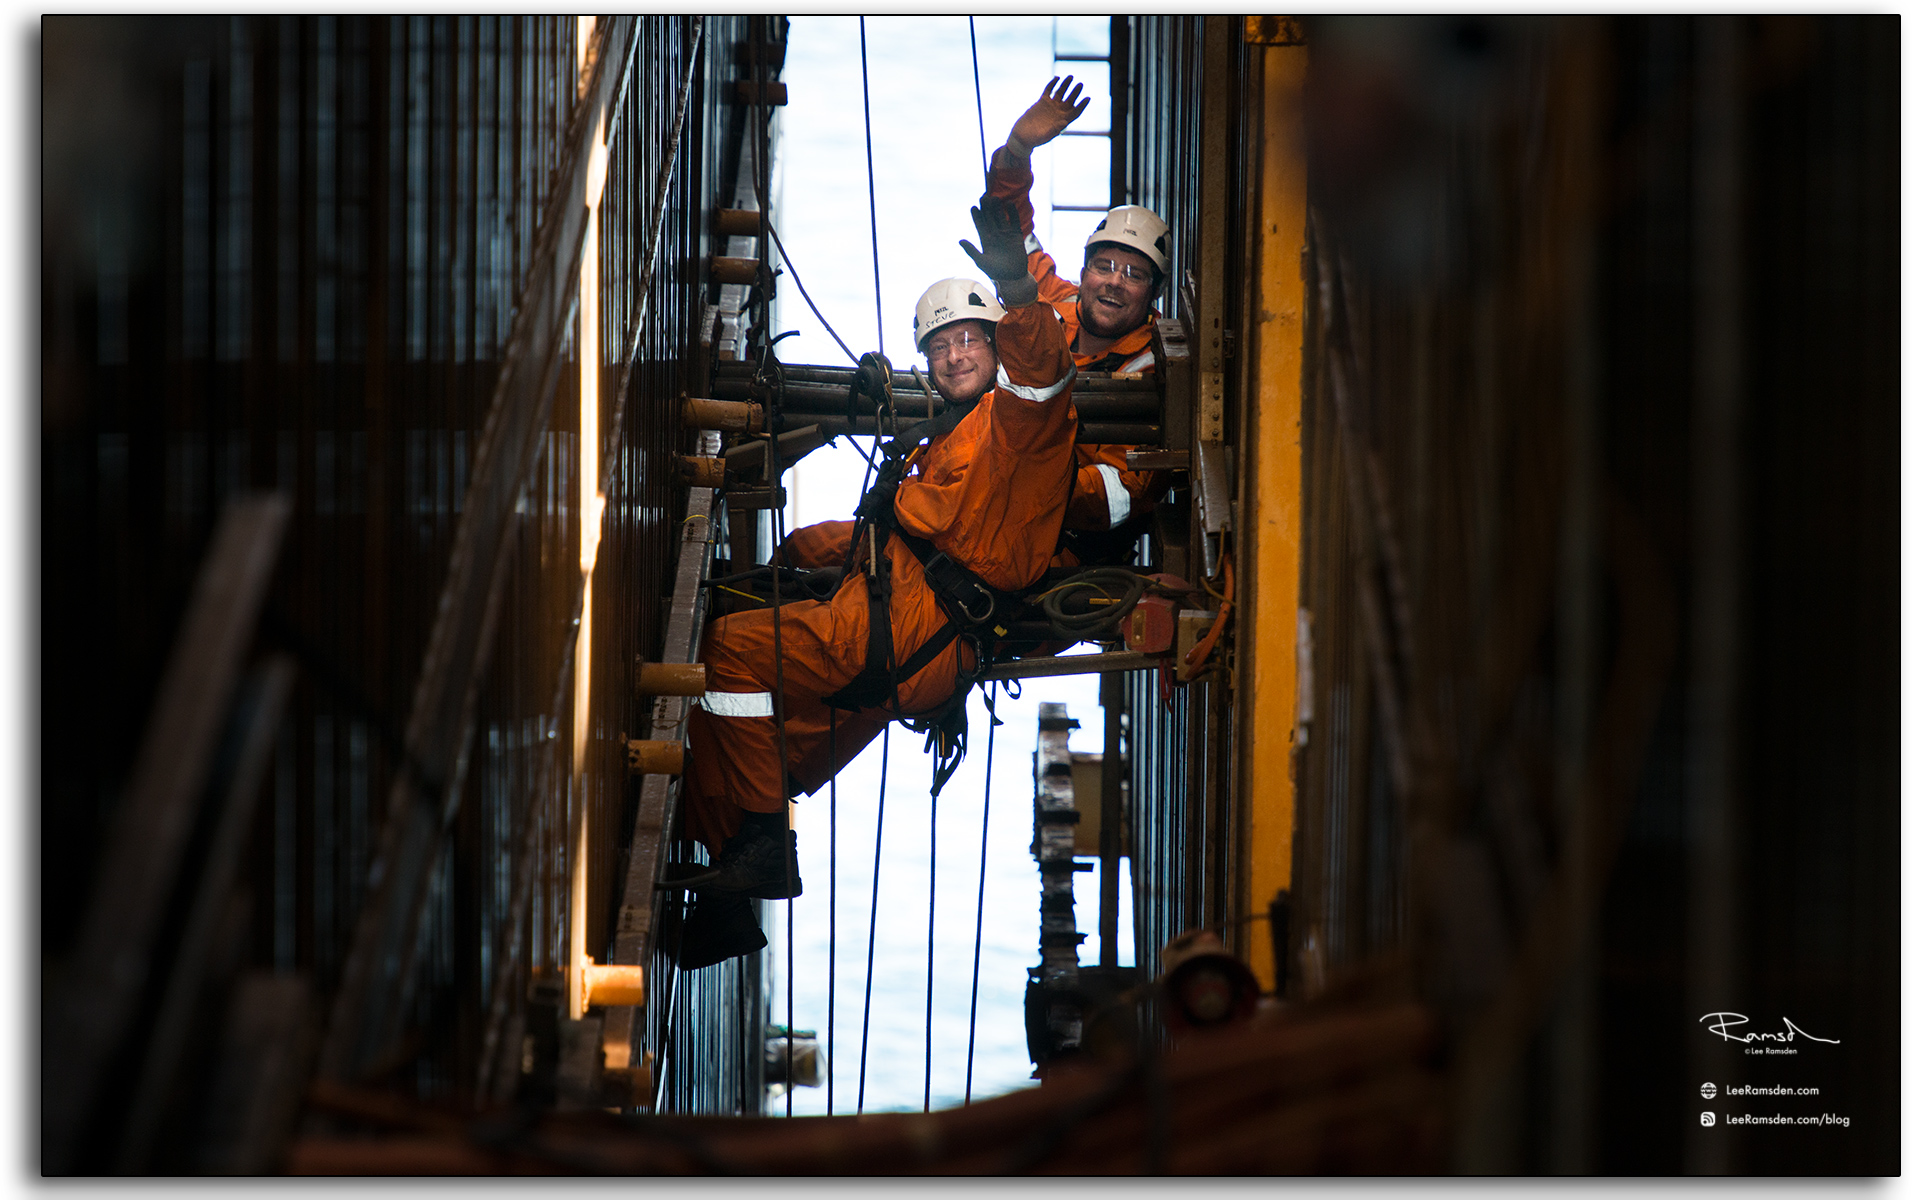 Happy rope technicians, rope access, IRATA, working at height, oil and gas industry, industrial photographer, Lee Ramsden